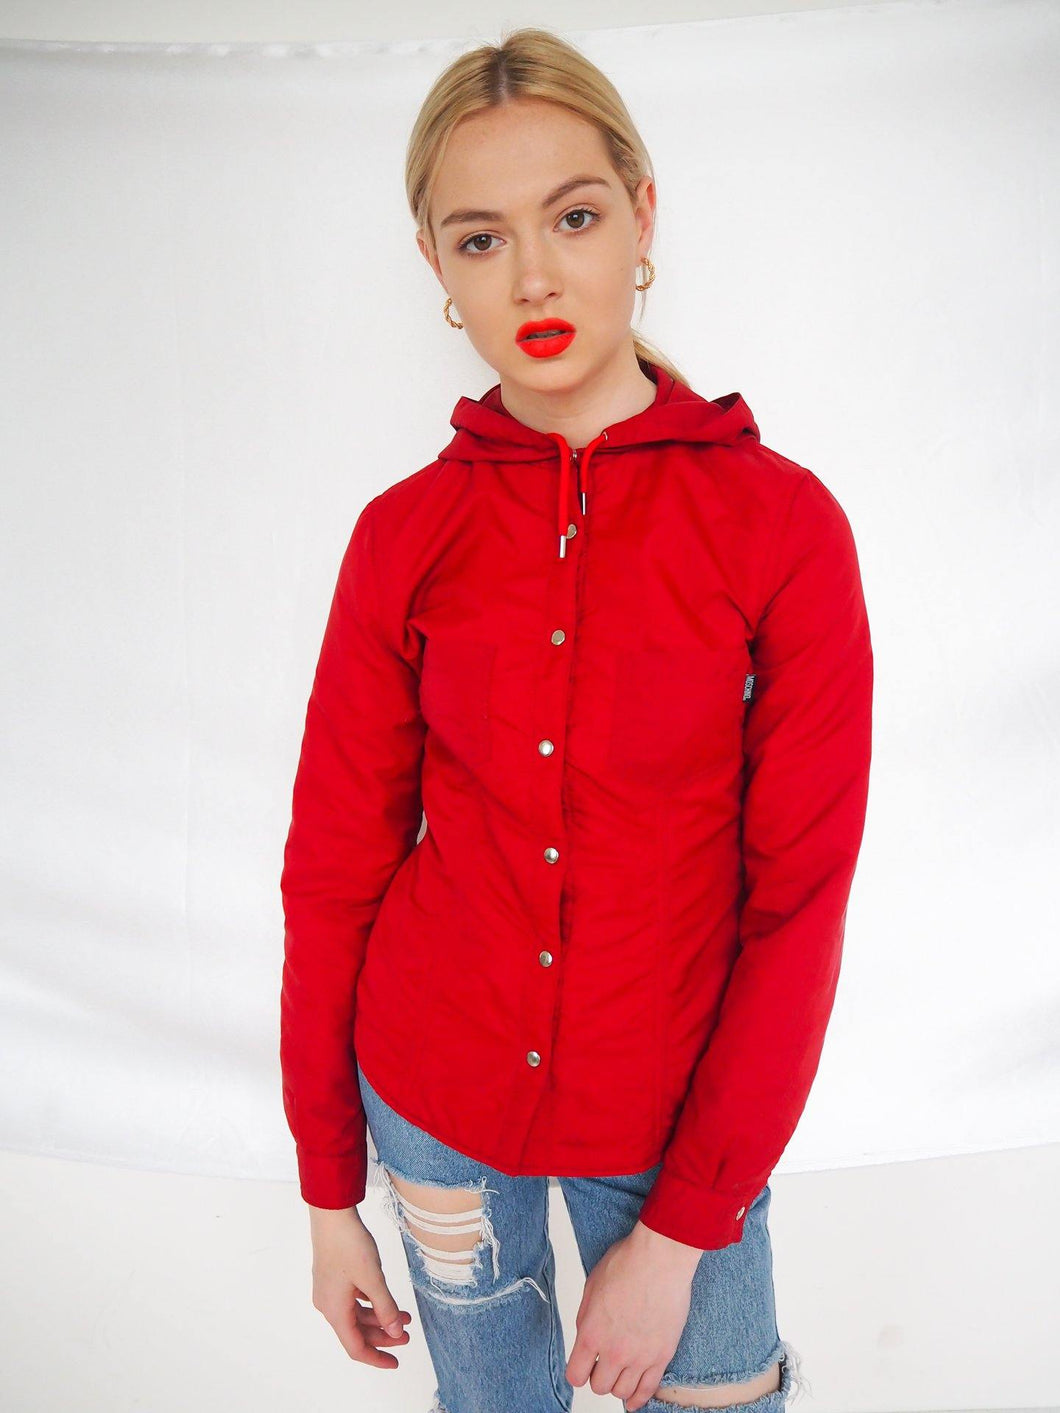 Vintage red Moschino button up jacket